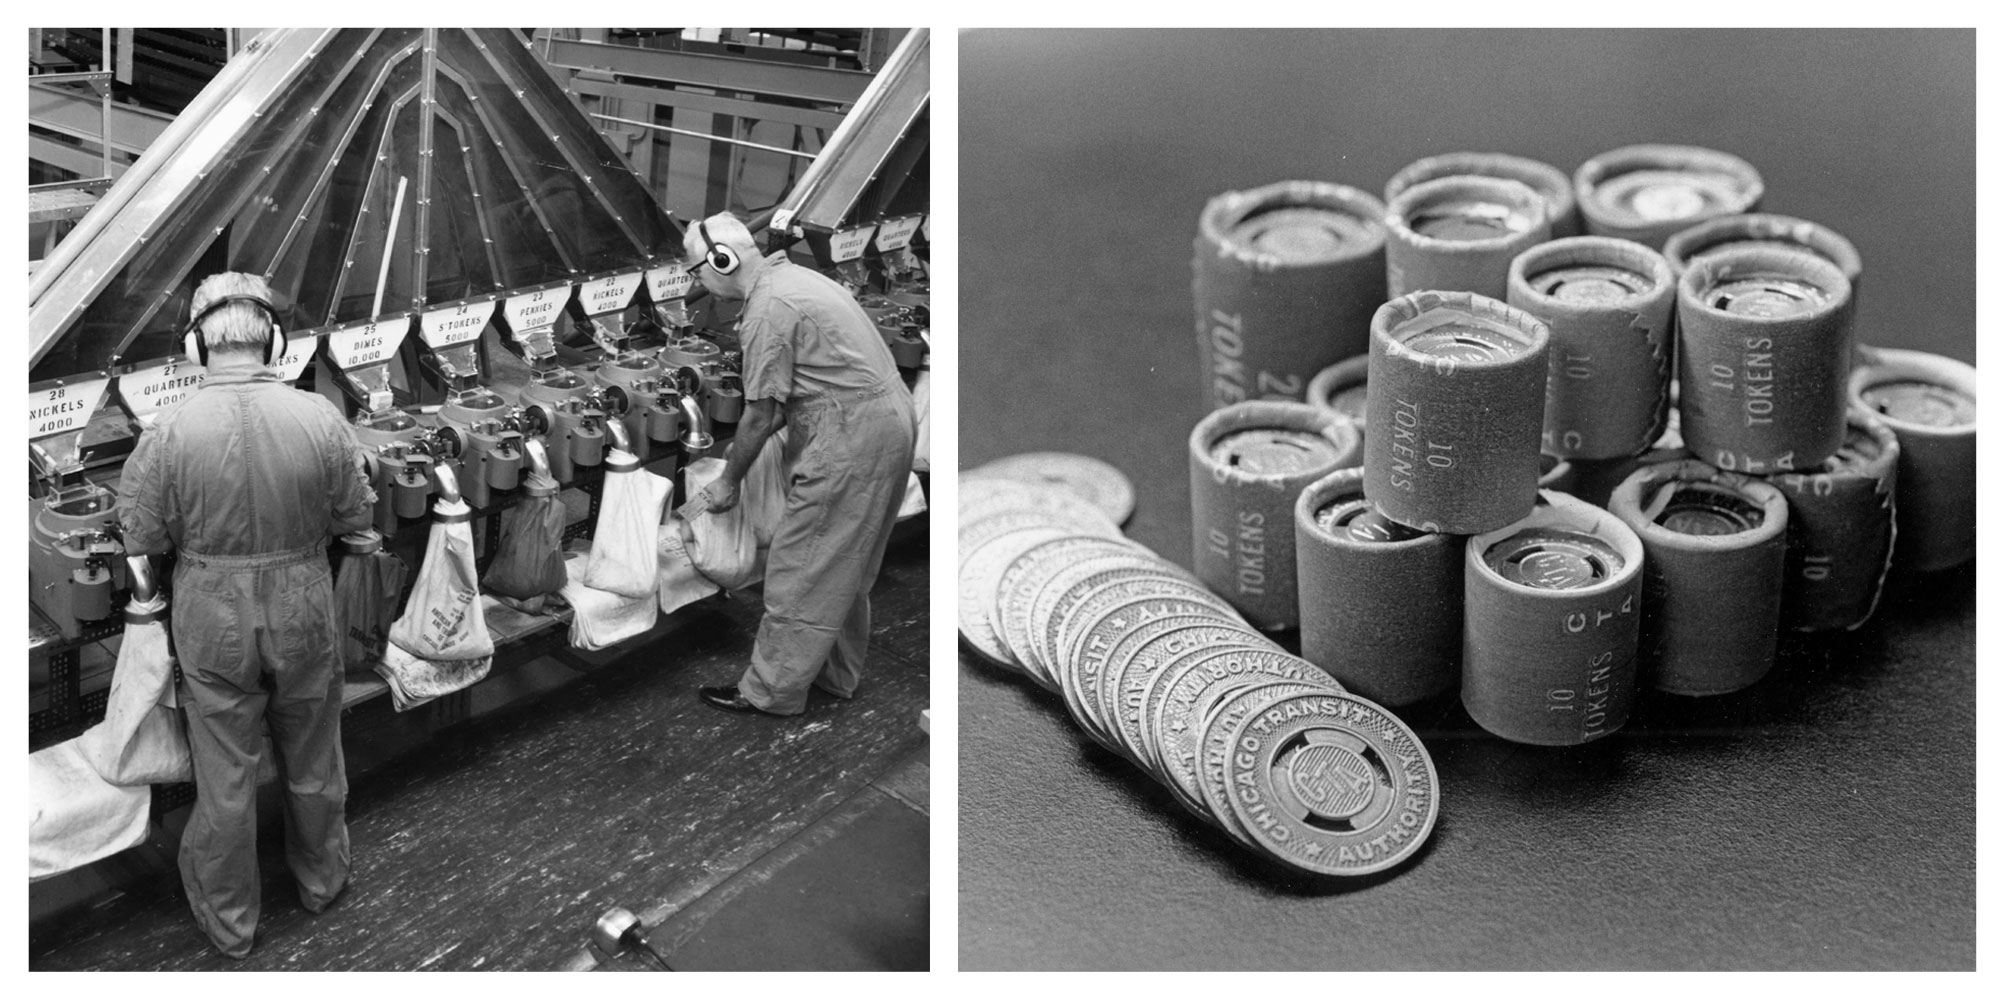 After used tokens were collected, they were counted before being recirculated (left). Tokens were frequently purchased in lots of 10 or 20 (right), which offered buyers a discount. (Courtesy Chicago Transit Authority)